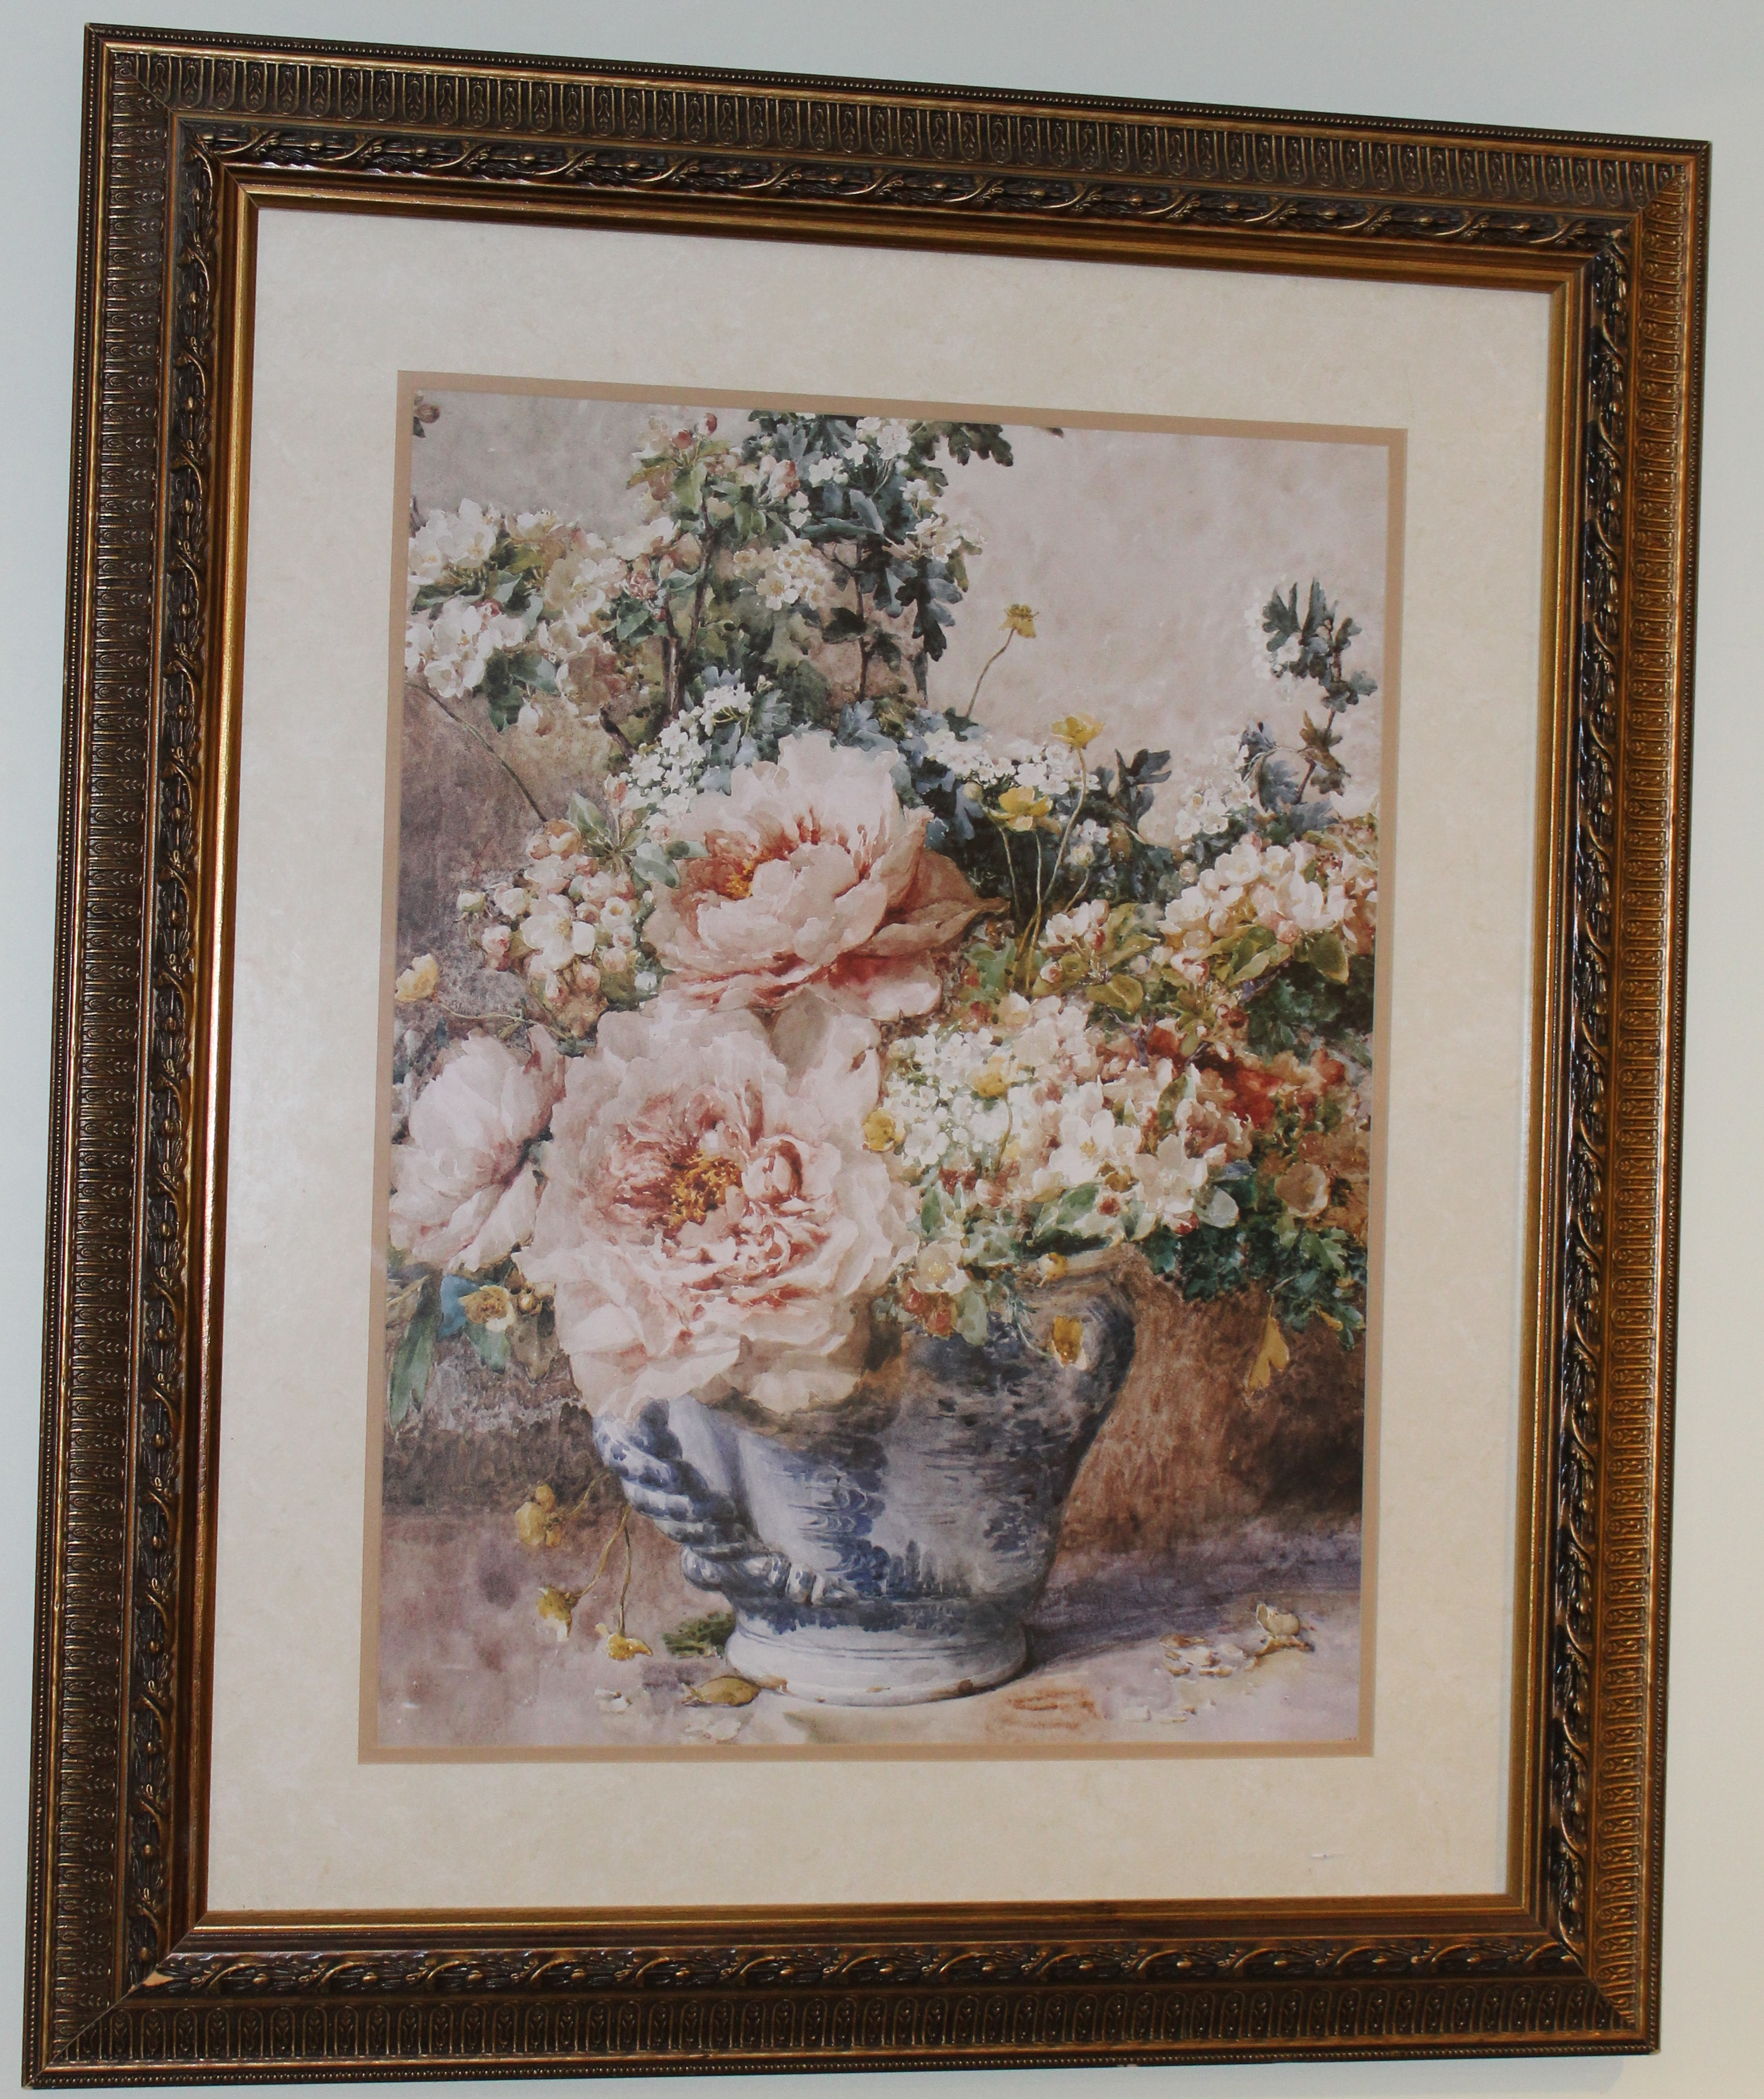 Blossoms with Peonies Image